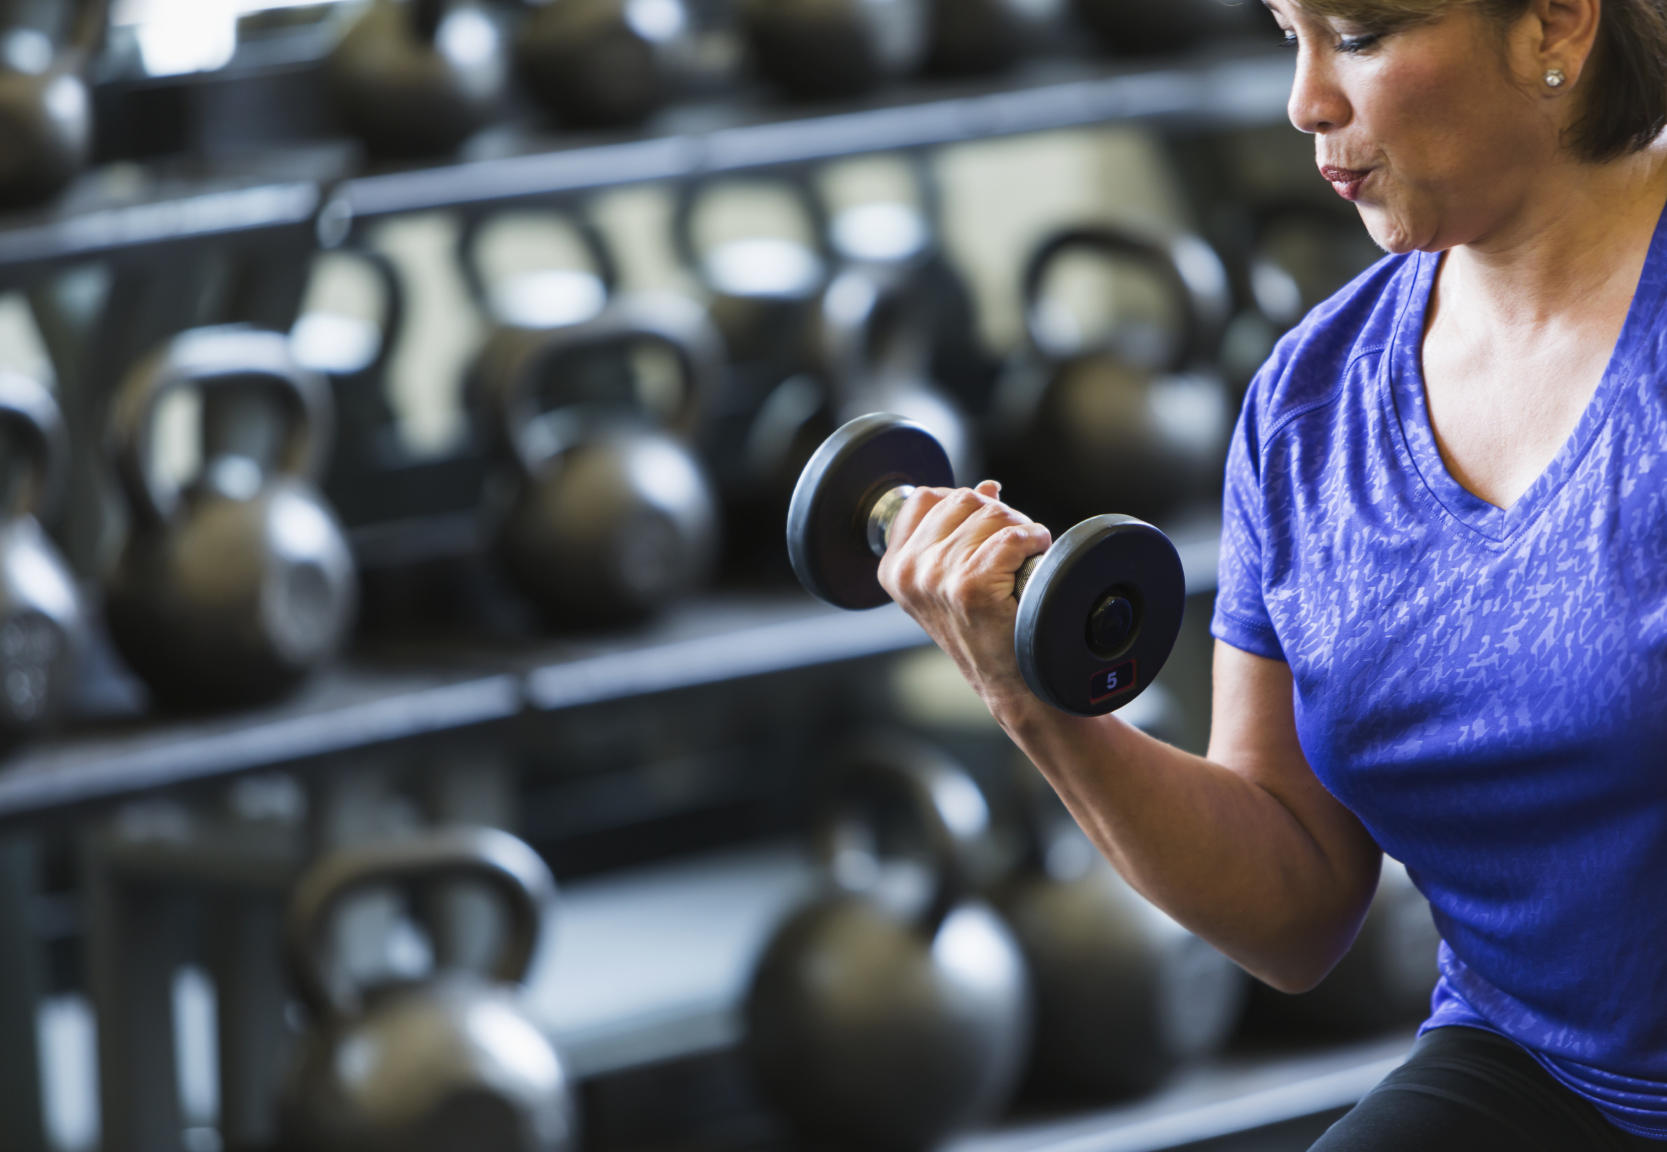 5 Easy Gym Exercises To Get You Started On Losing Weight